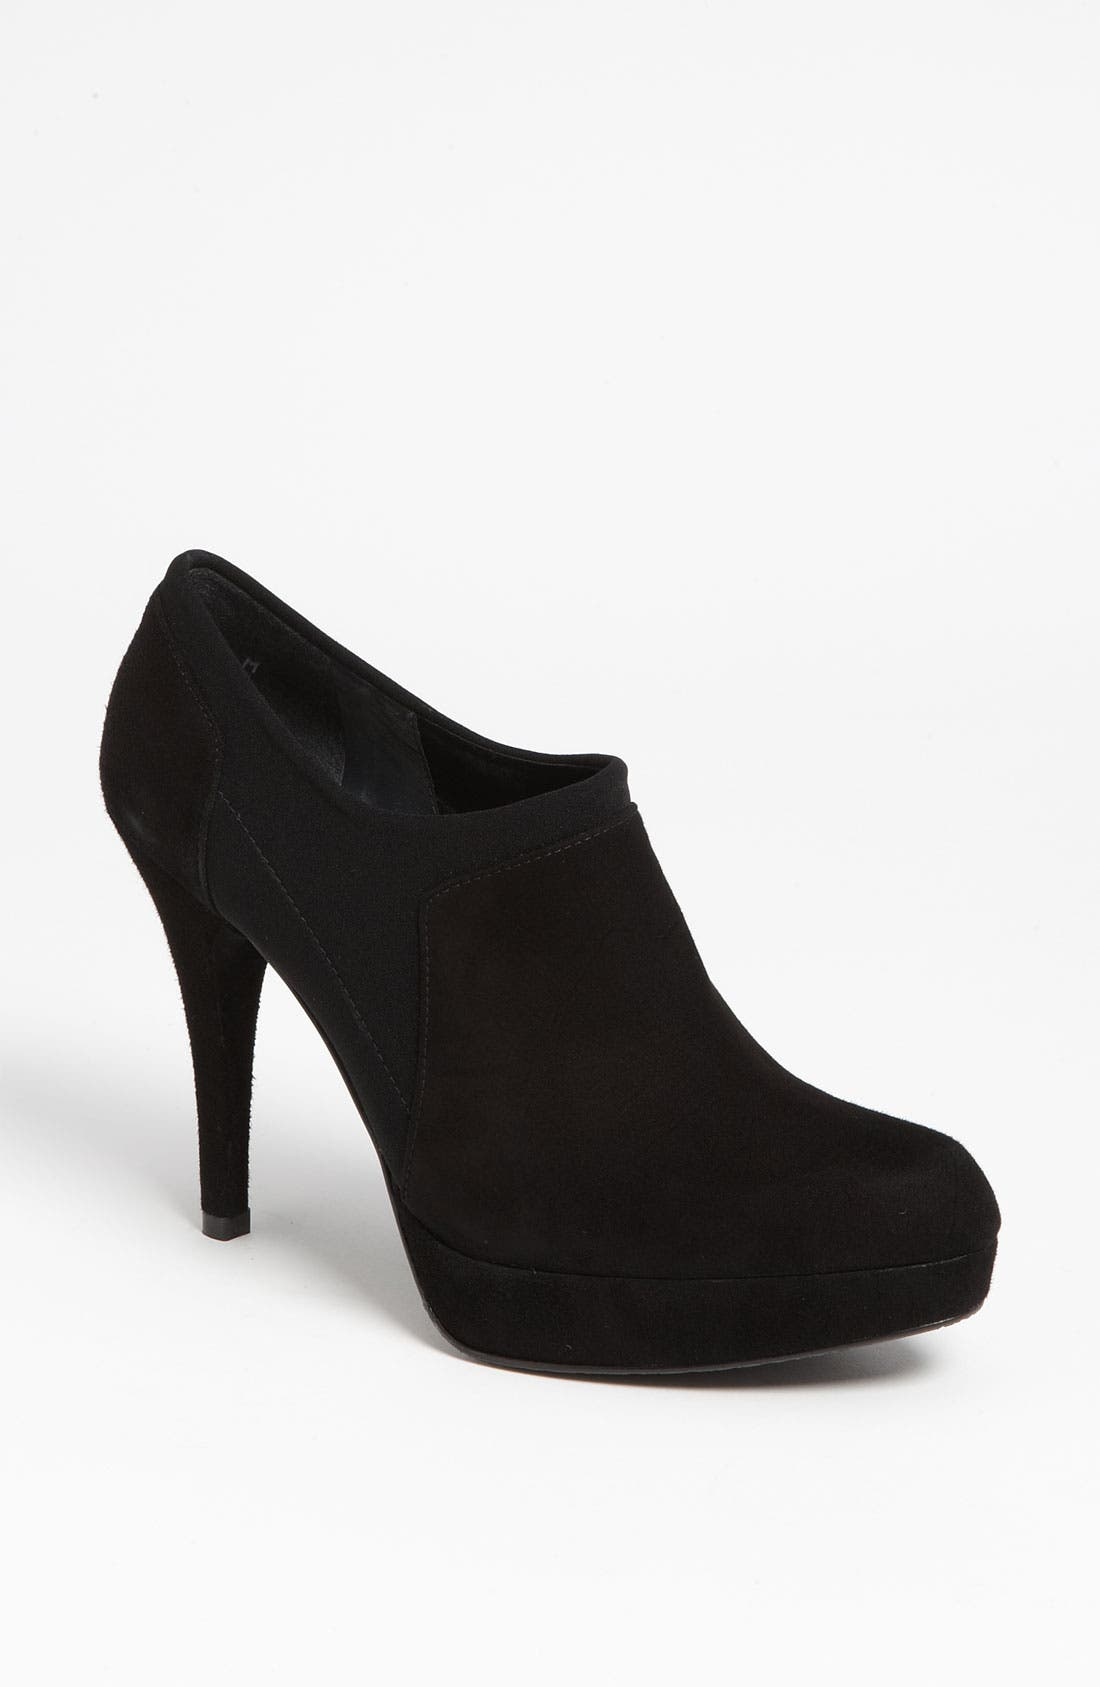 Alternate Image 1 Selected - Stuart Weitzman 'Upkeep' Bootie (Nordstrom Exclusive)